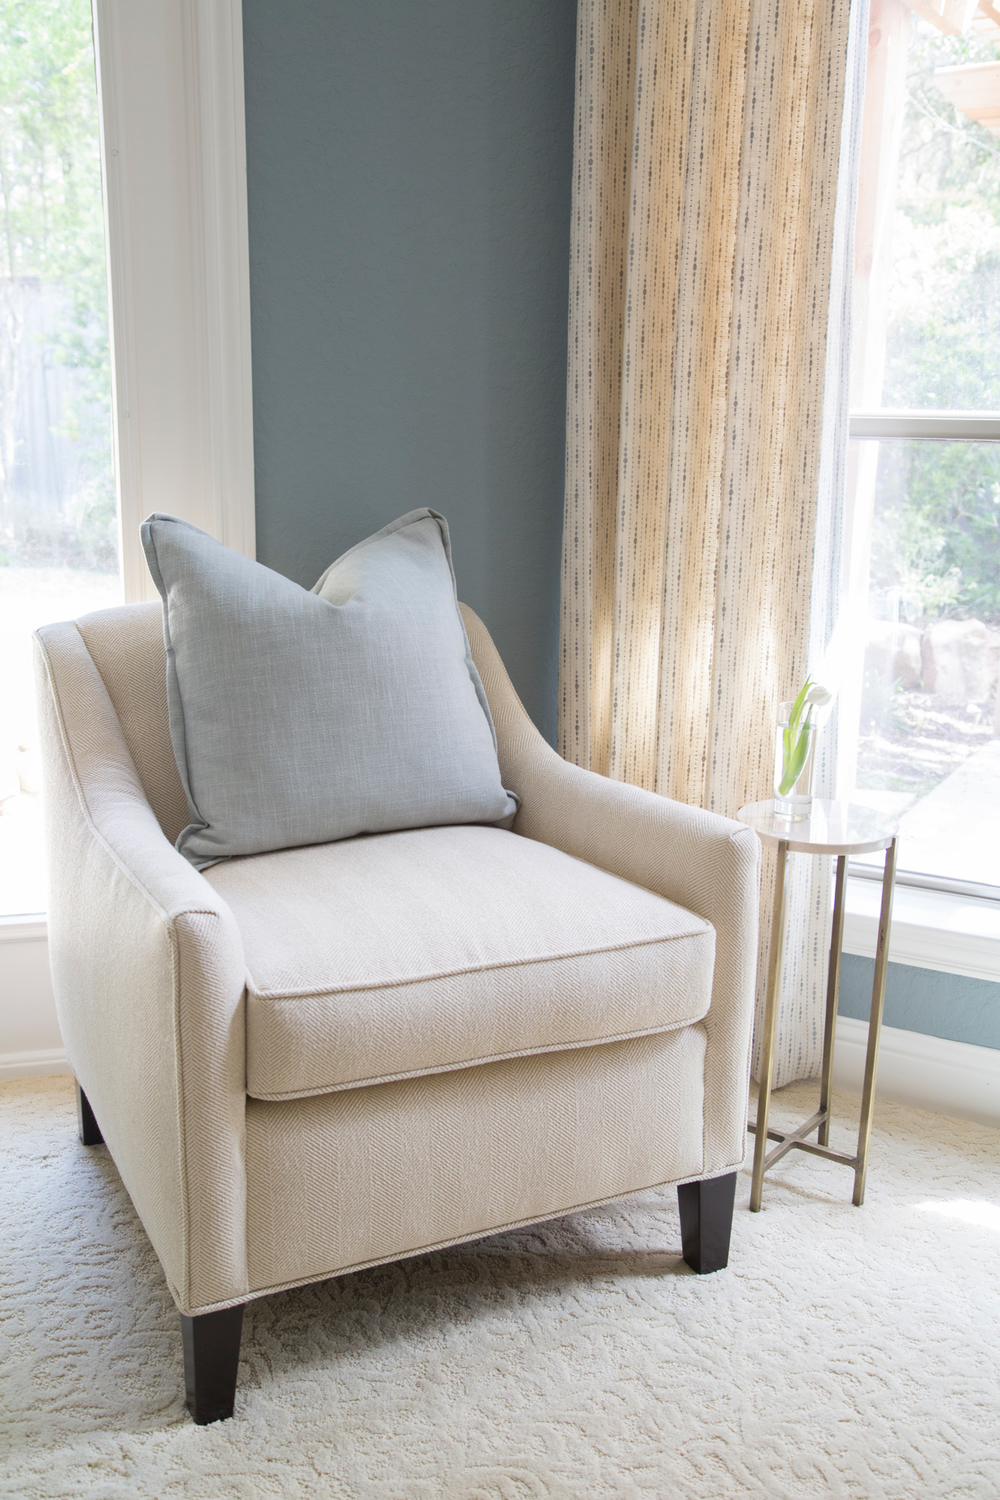 Master Bedroom Redo - Seating, side table, drapery, Designer: Carla Aston